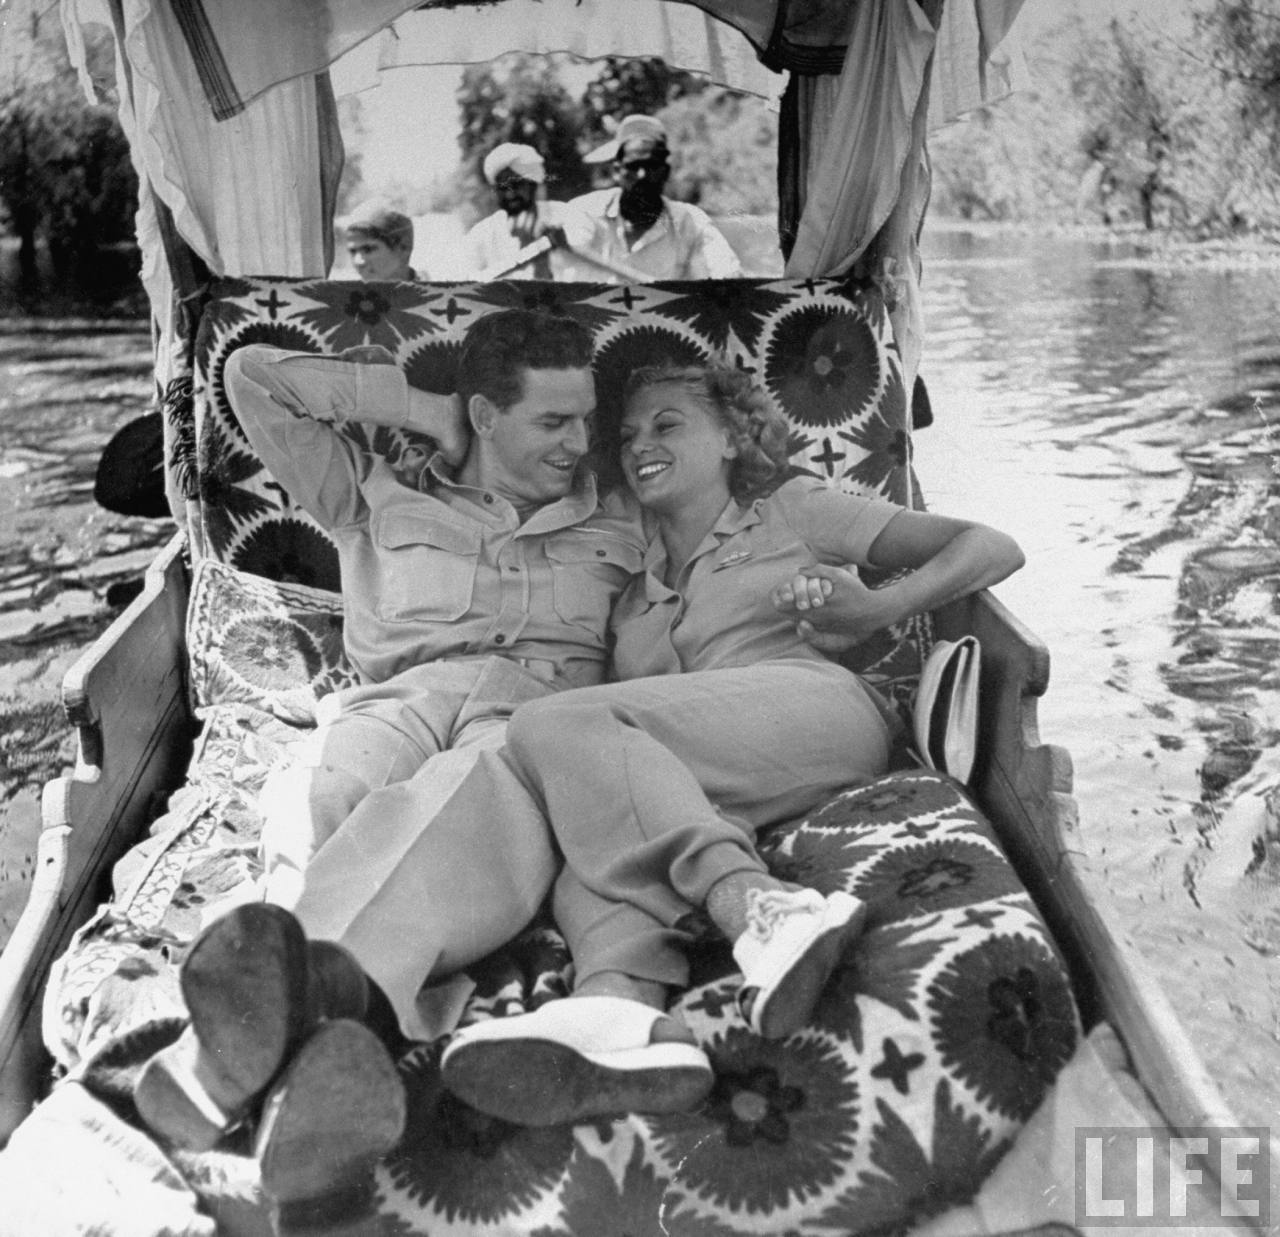 US Soldier Vaden Carney (L) and Pam Rumbold, taking a romantic boat ride in Kashmir - 1943